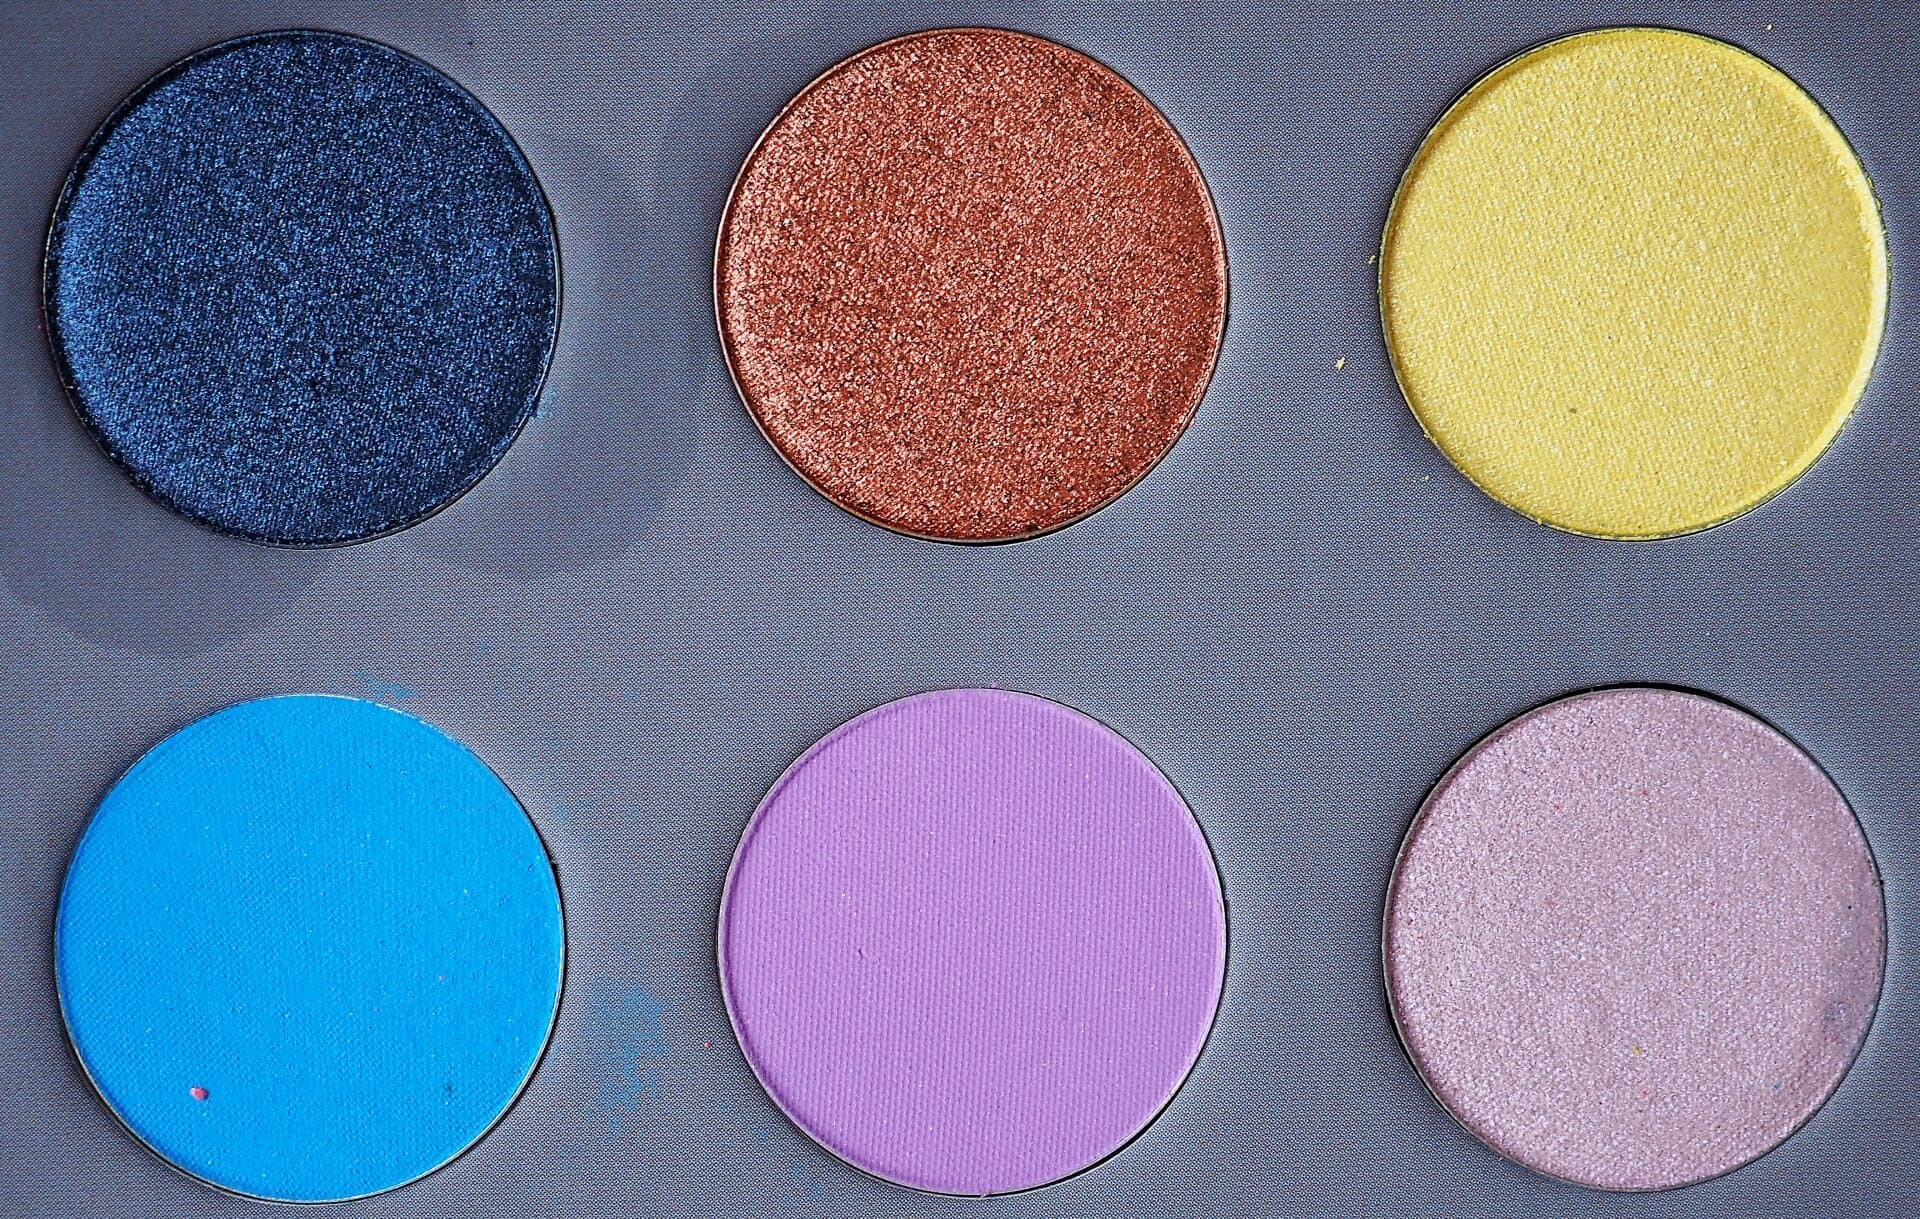 OPINIA AFFECT PROVOCATION EYESHADOW PALETTE